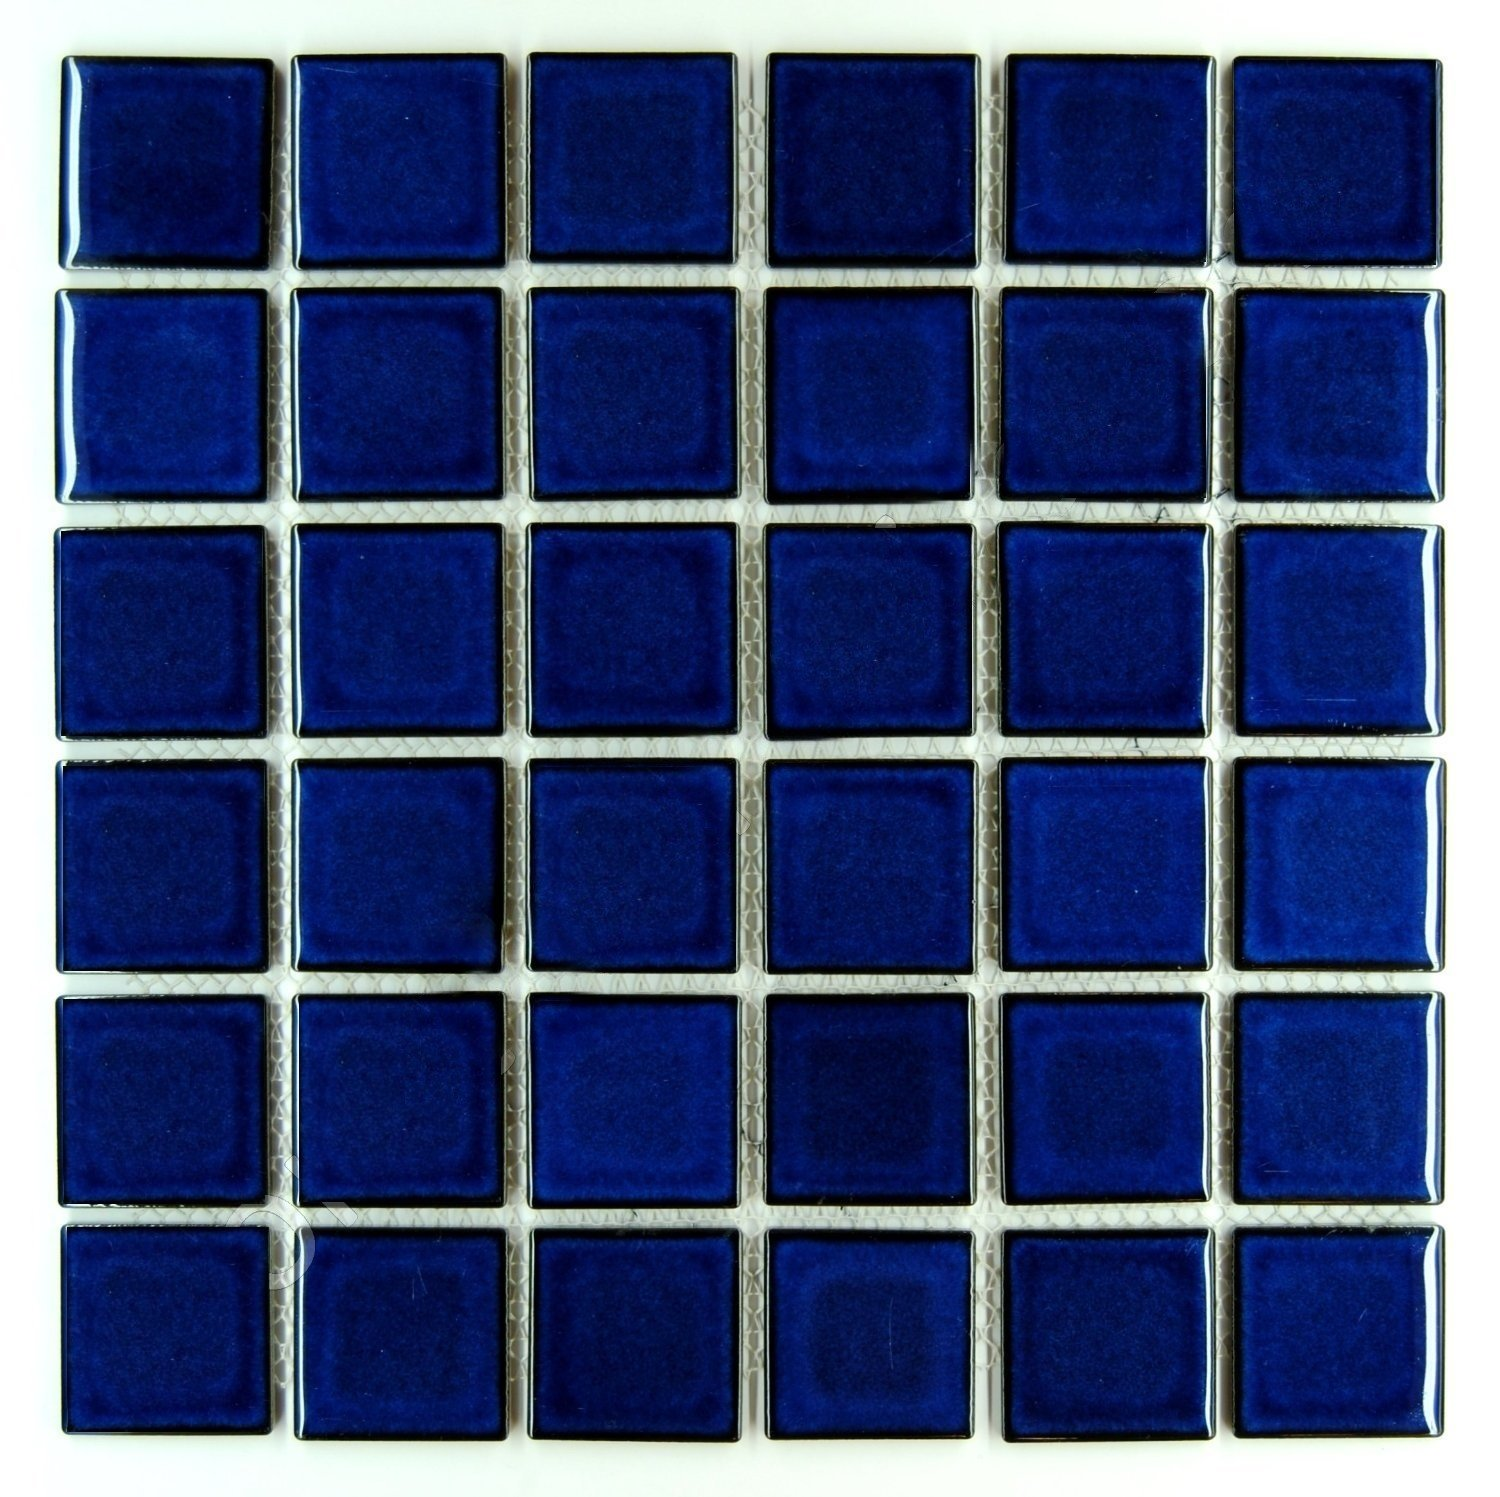 Premium Quality Cobalt Blue Porcelain Square Mosaic Tile Shiny Look ...